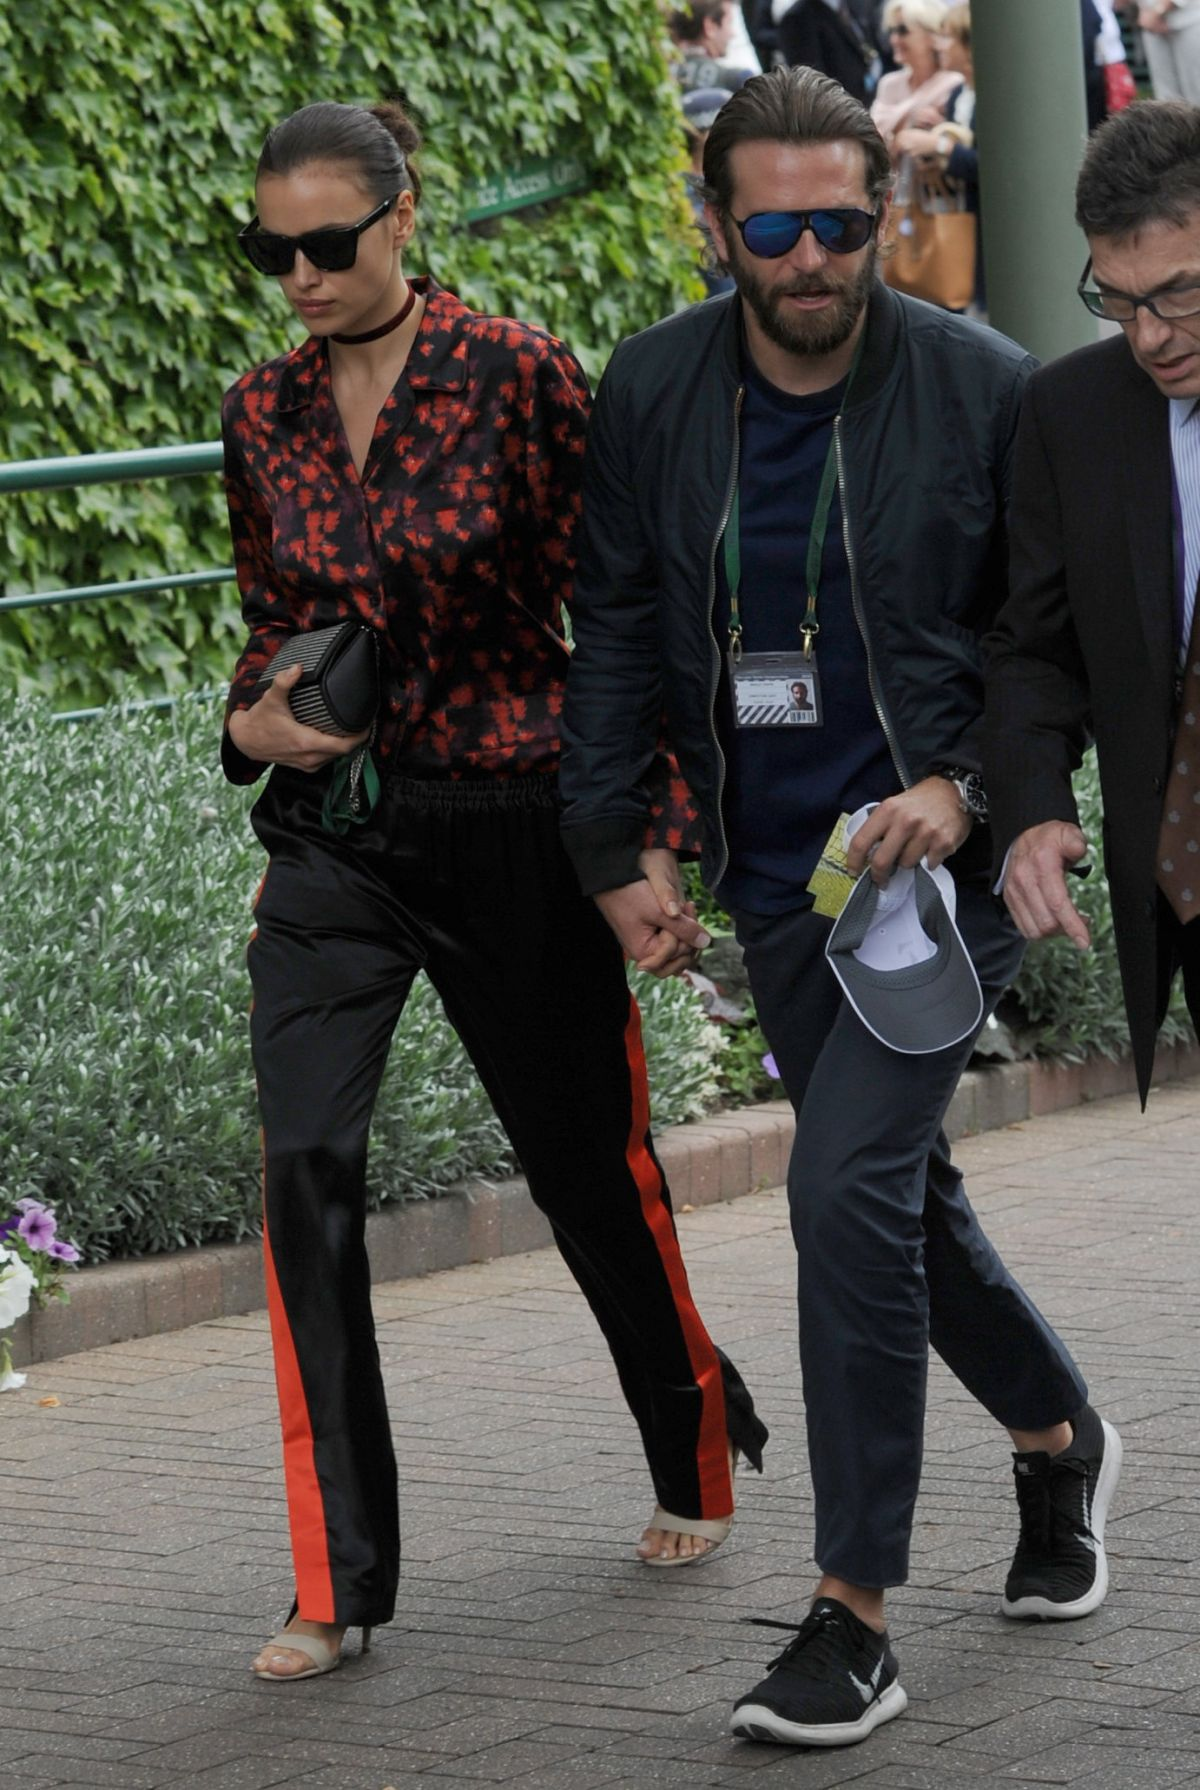 IRINA SHAYK and Bradley Cooper Out in London 07/08/2016